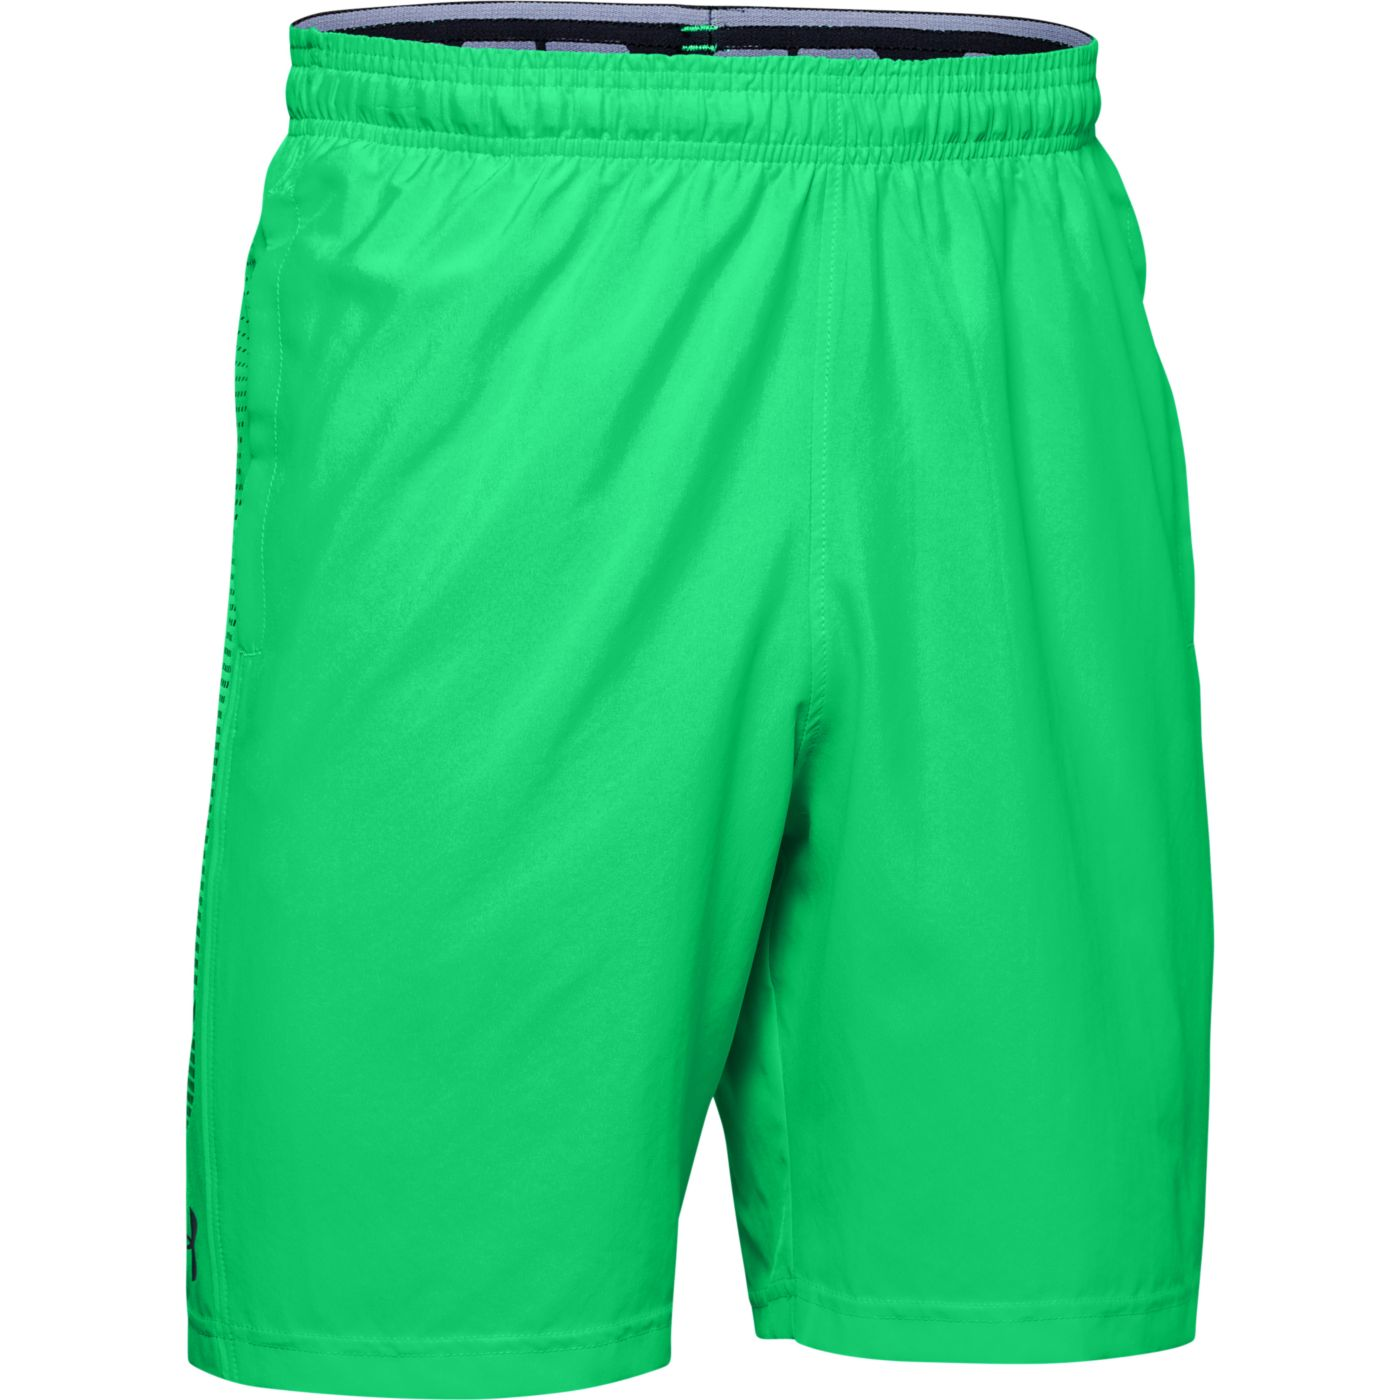 Under Armour Woven Graphic Shorts (Regular and Big & Tall)